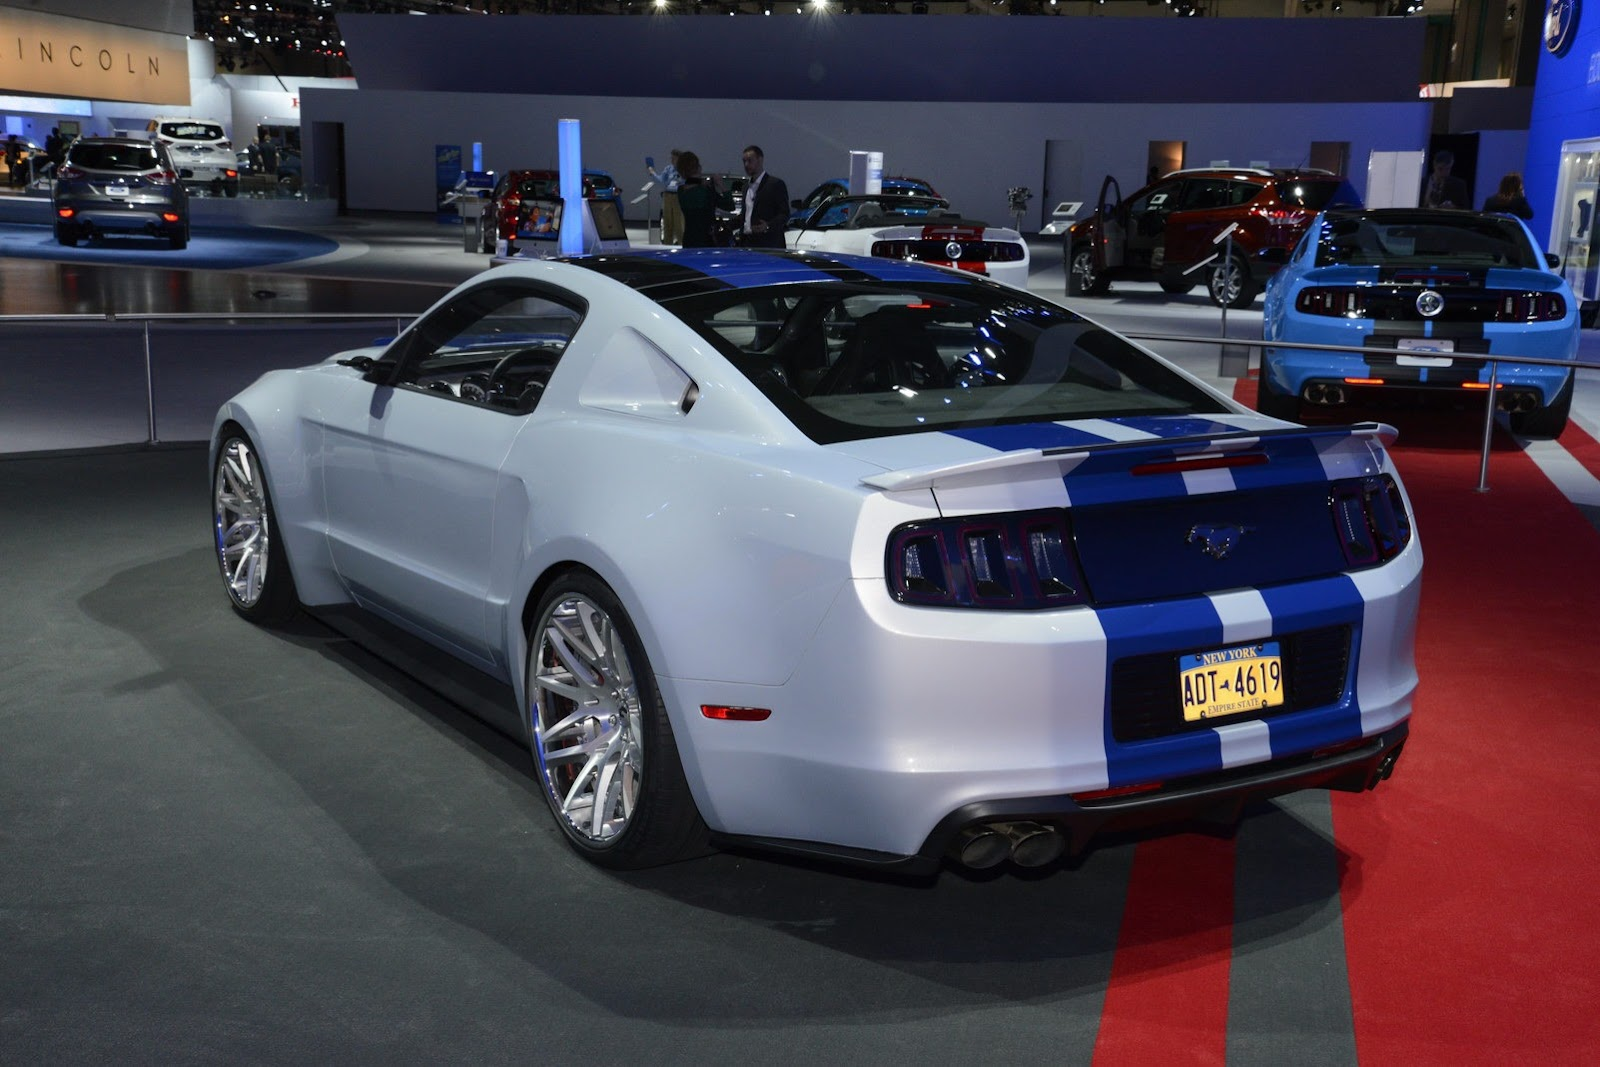 2014 ford mustang nfs need for speed dark cars wallpapers. Black Bedroom Furniture Sets. Home Design Ideas